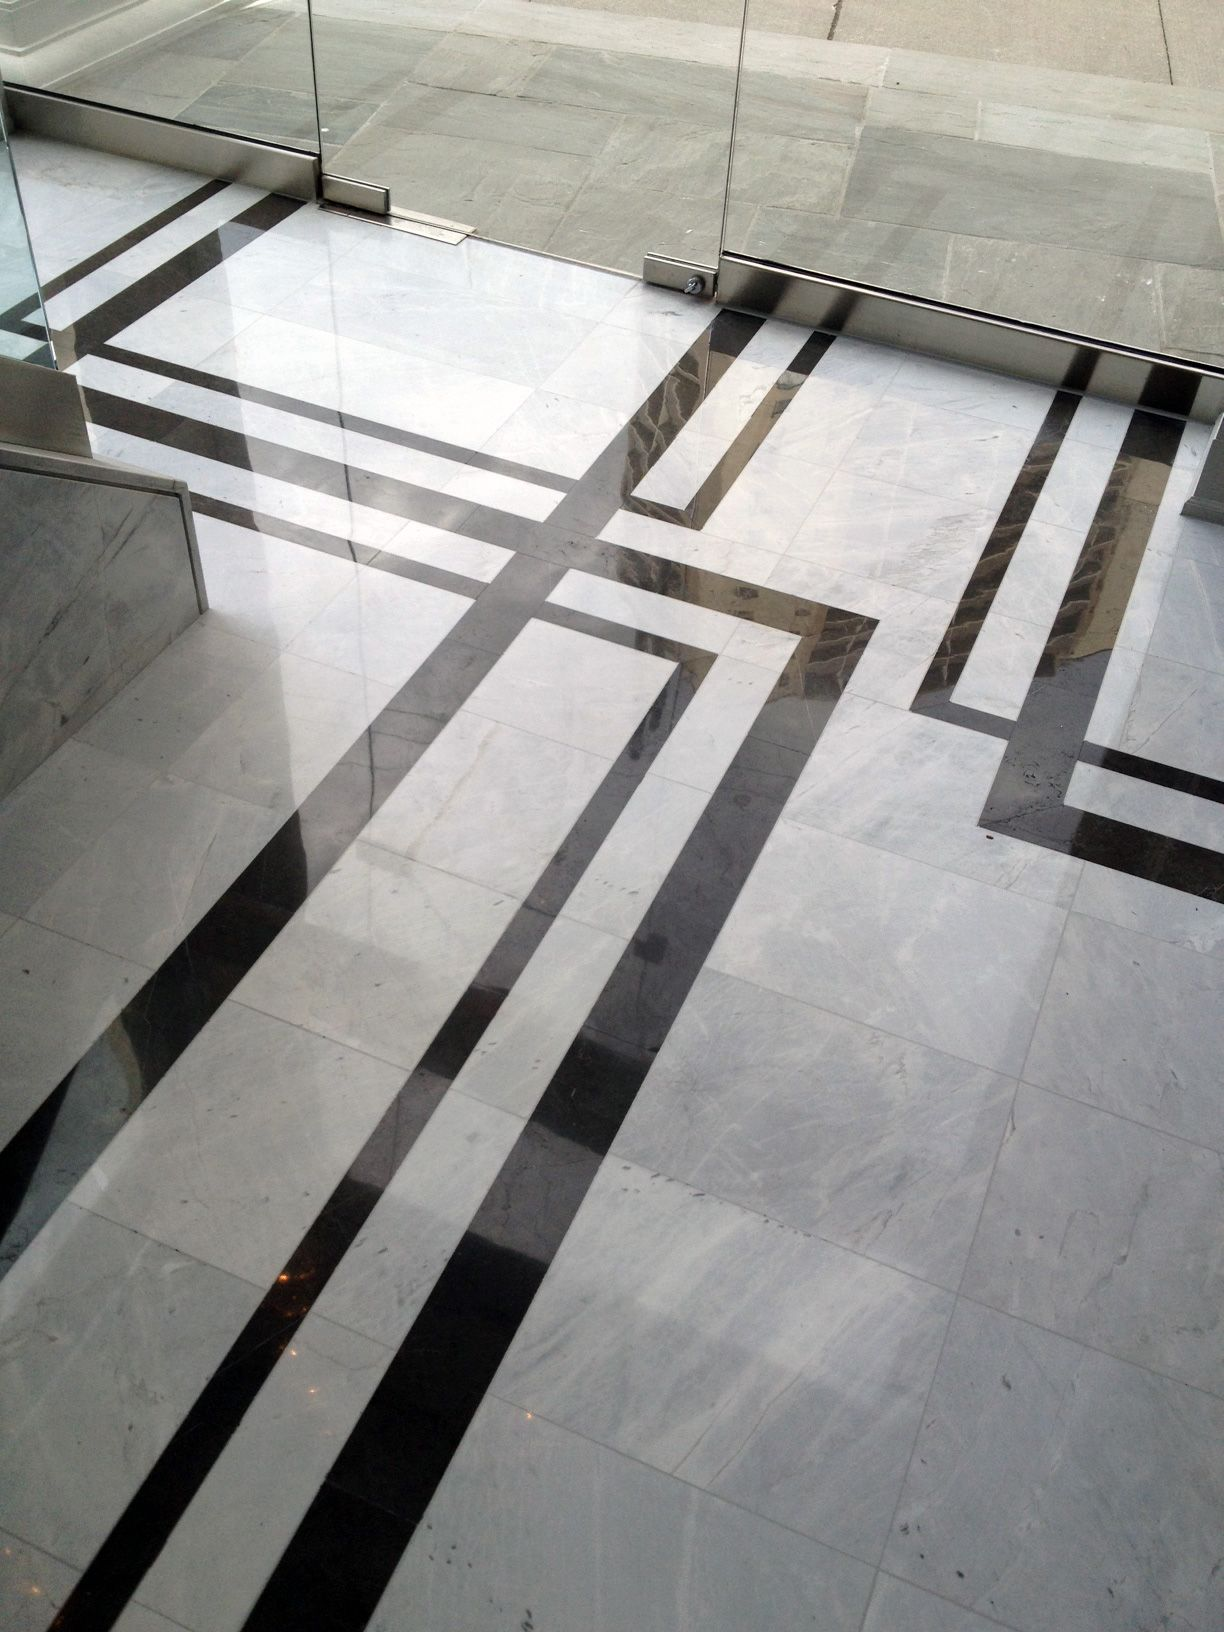 Strikingly contrasting marble creates a floor pattern that's not ... - ^